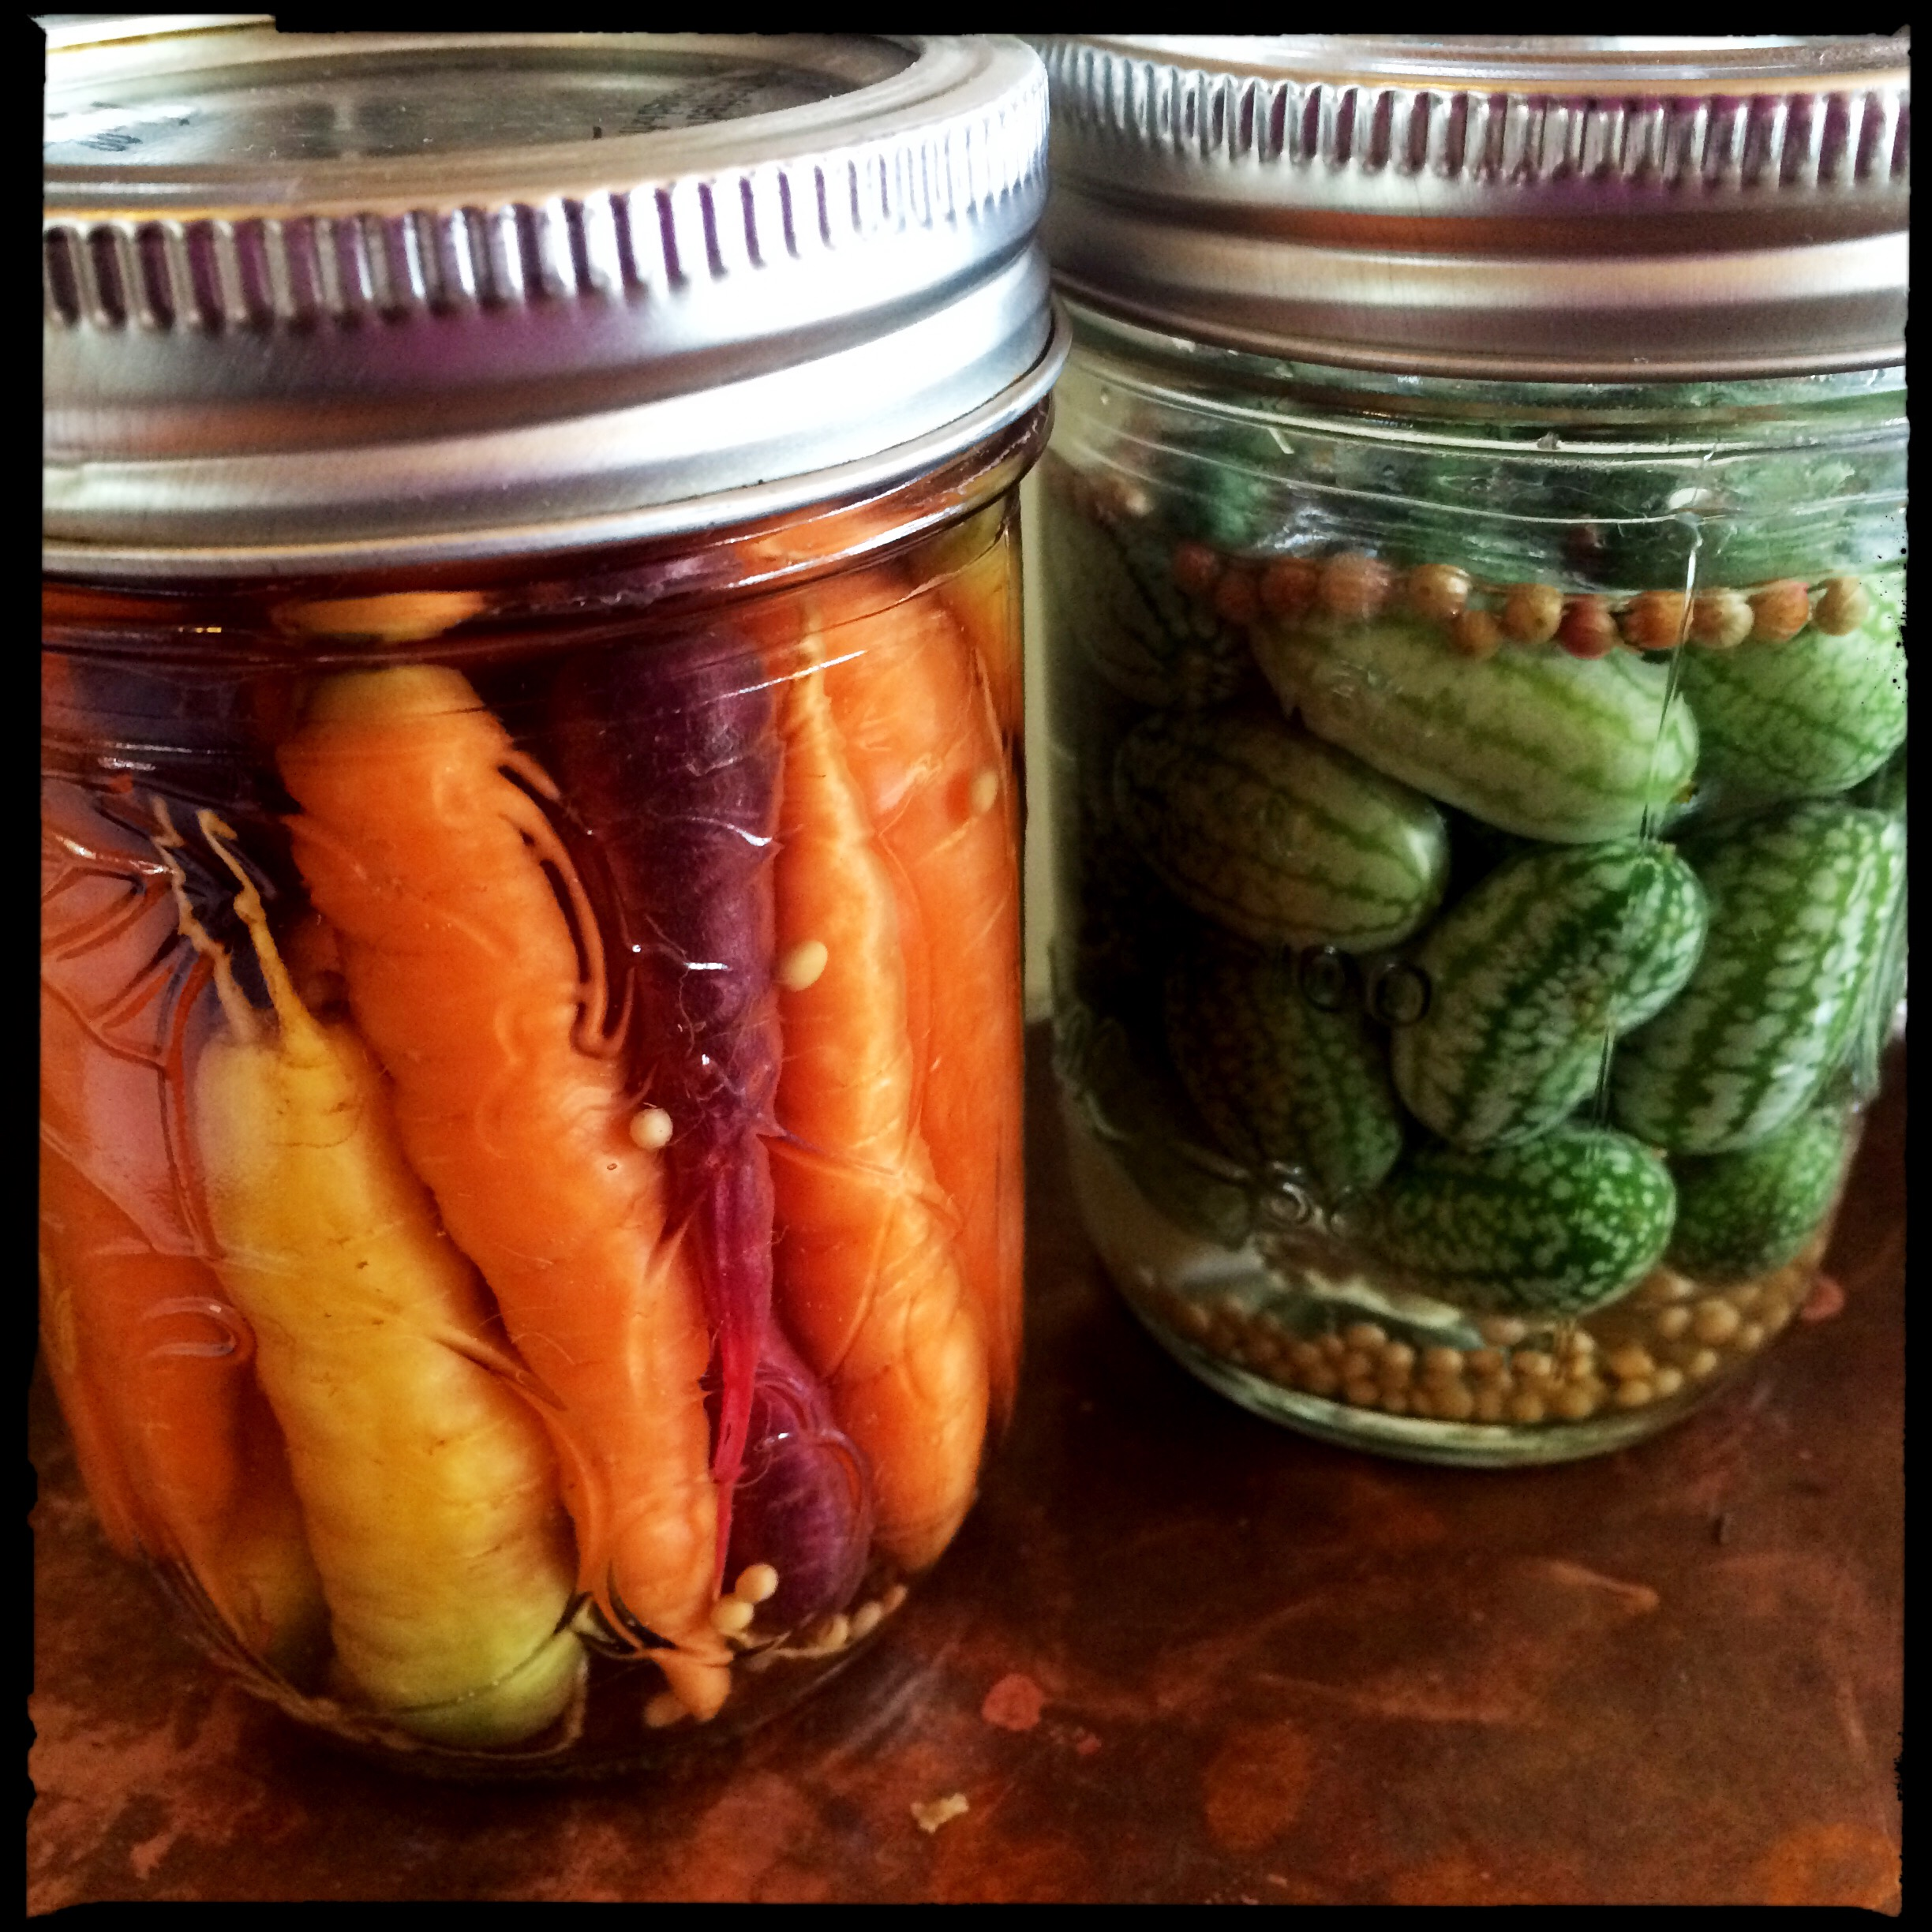 ... except for the handful we snacked on, the whole harvest fit into one half-pint jar pickled. Also pickled the whole harvest of Mexican sour gherkins...